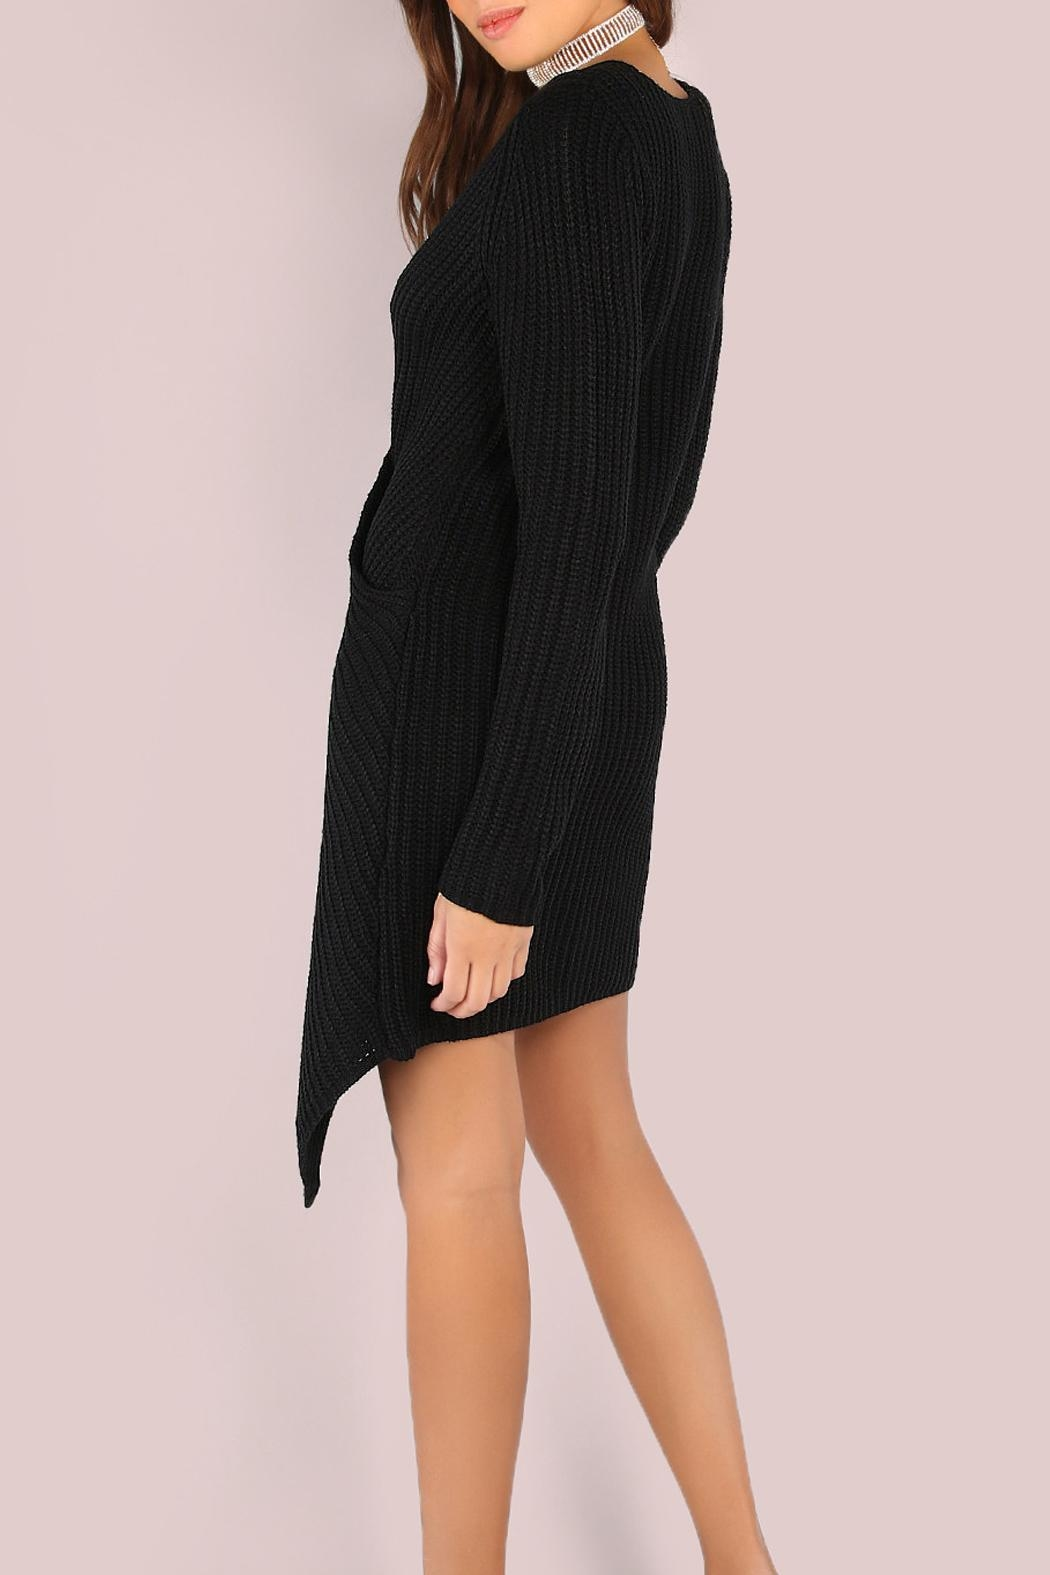 House of Atelier Sweater Wrap Dress - Side Cropped Image